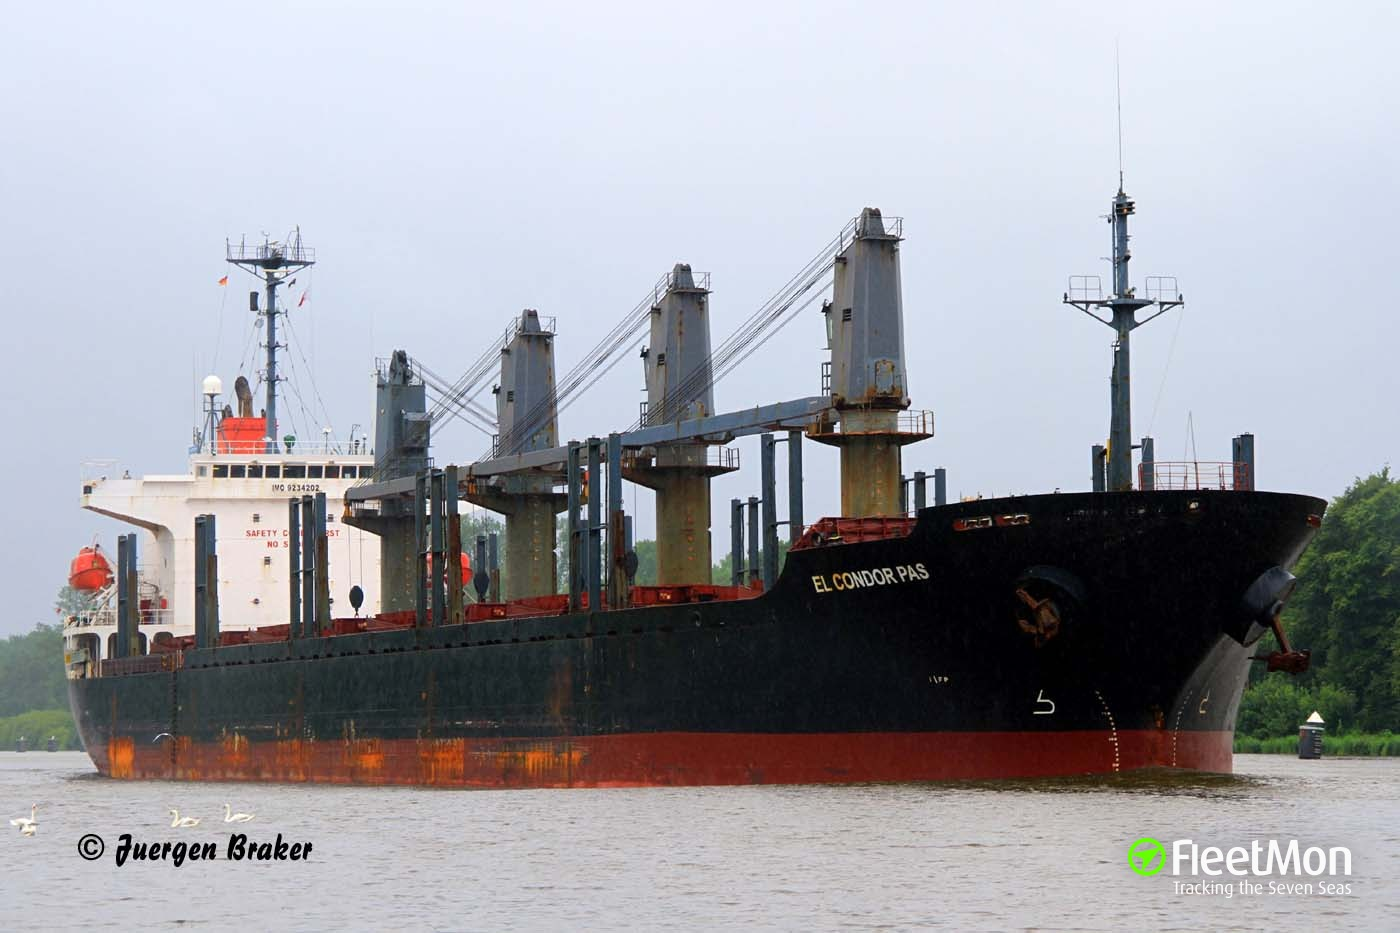 Bulk carrier El Condor Pas detained after engine failure in Kiel Canal